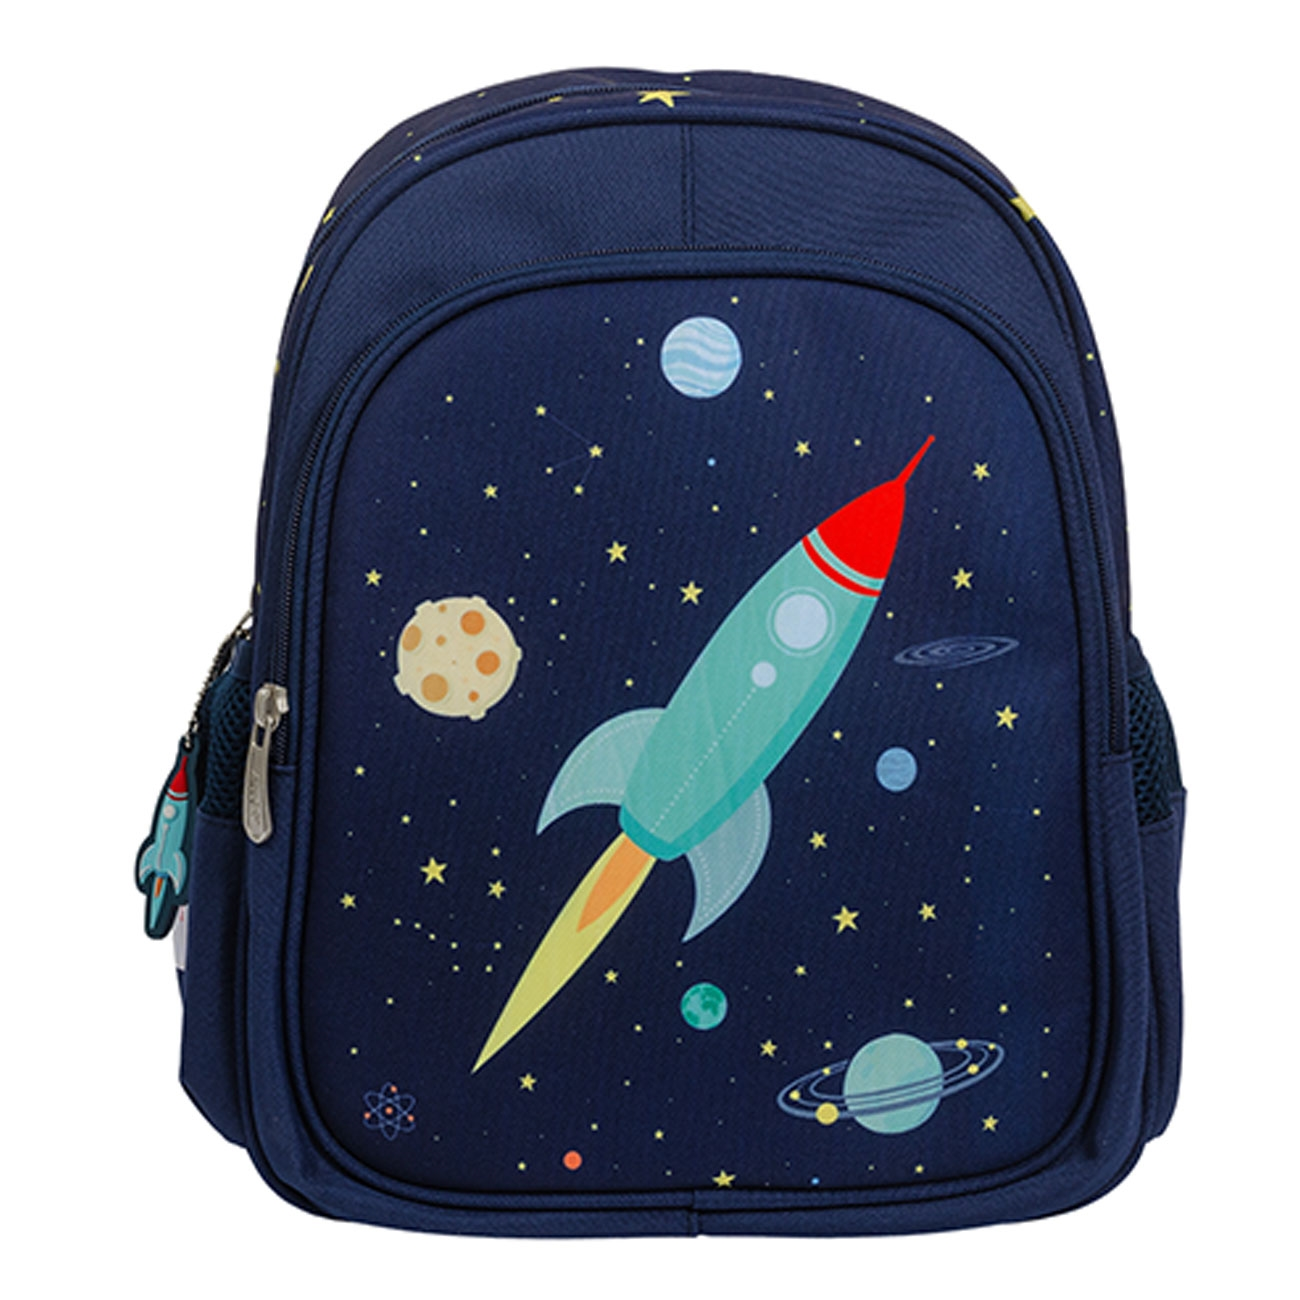 a-little-lovley-company-backpack-rygsaek-space-rummet-BPSPBU22-1